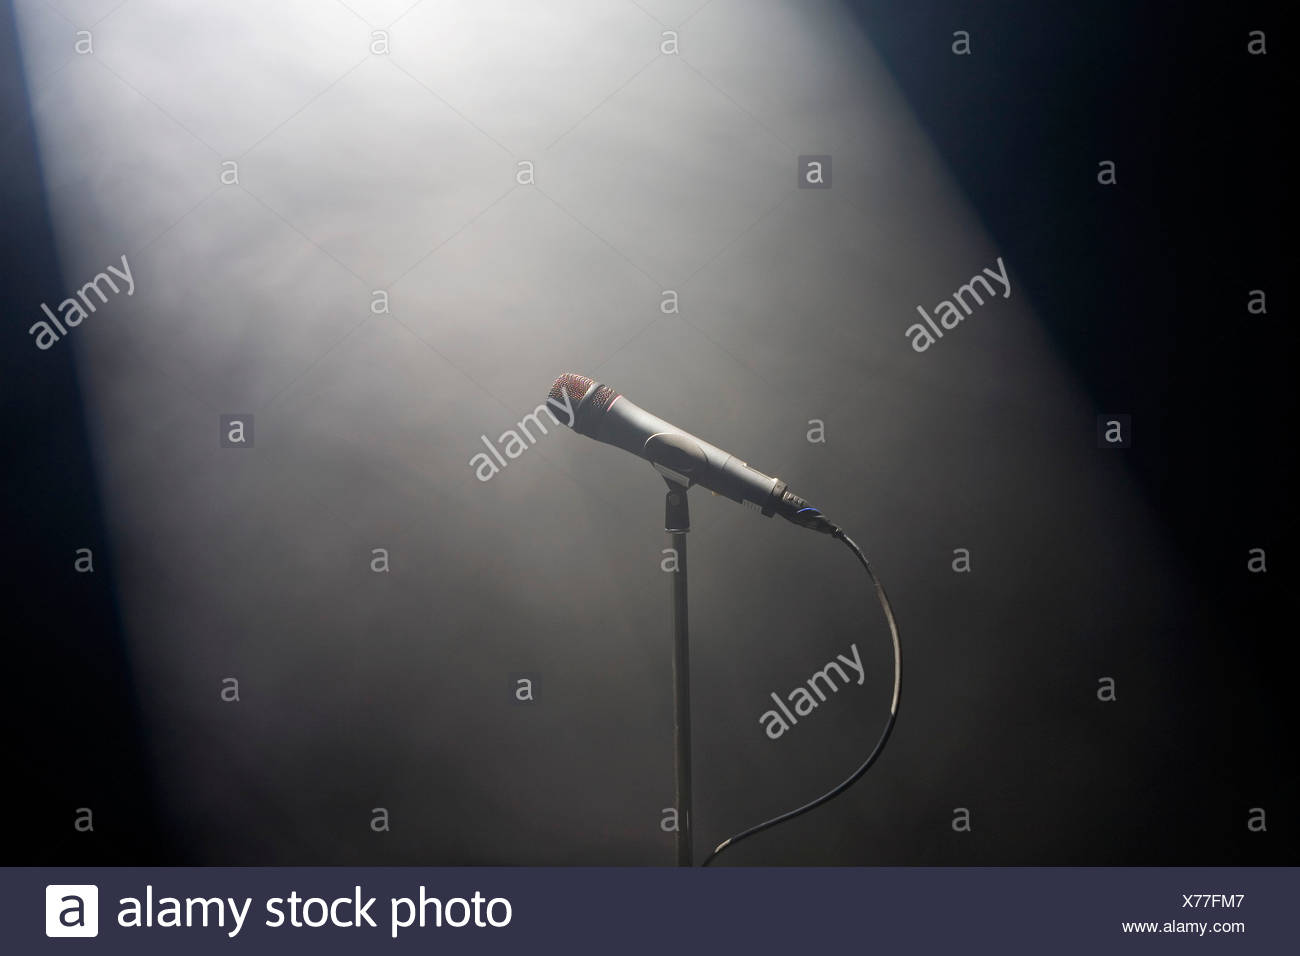 A spot lit microphone stand - Stock Image